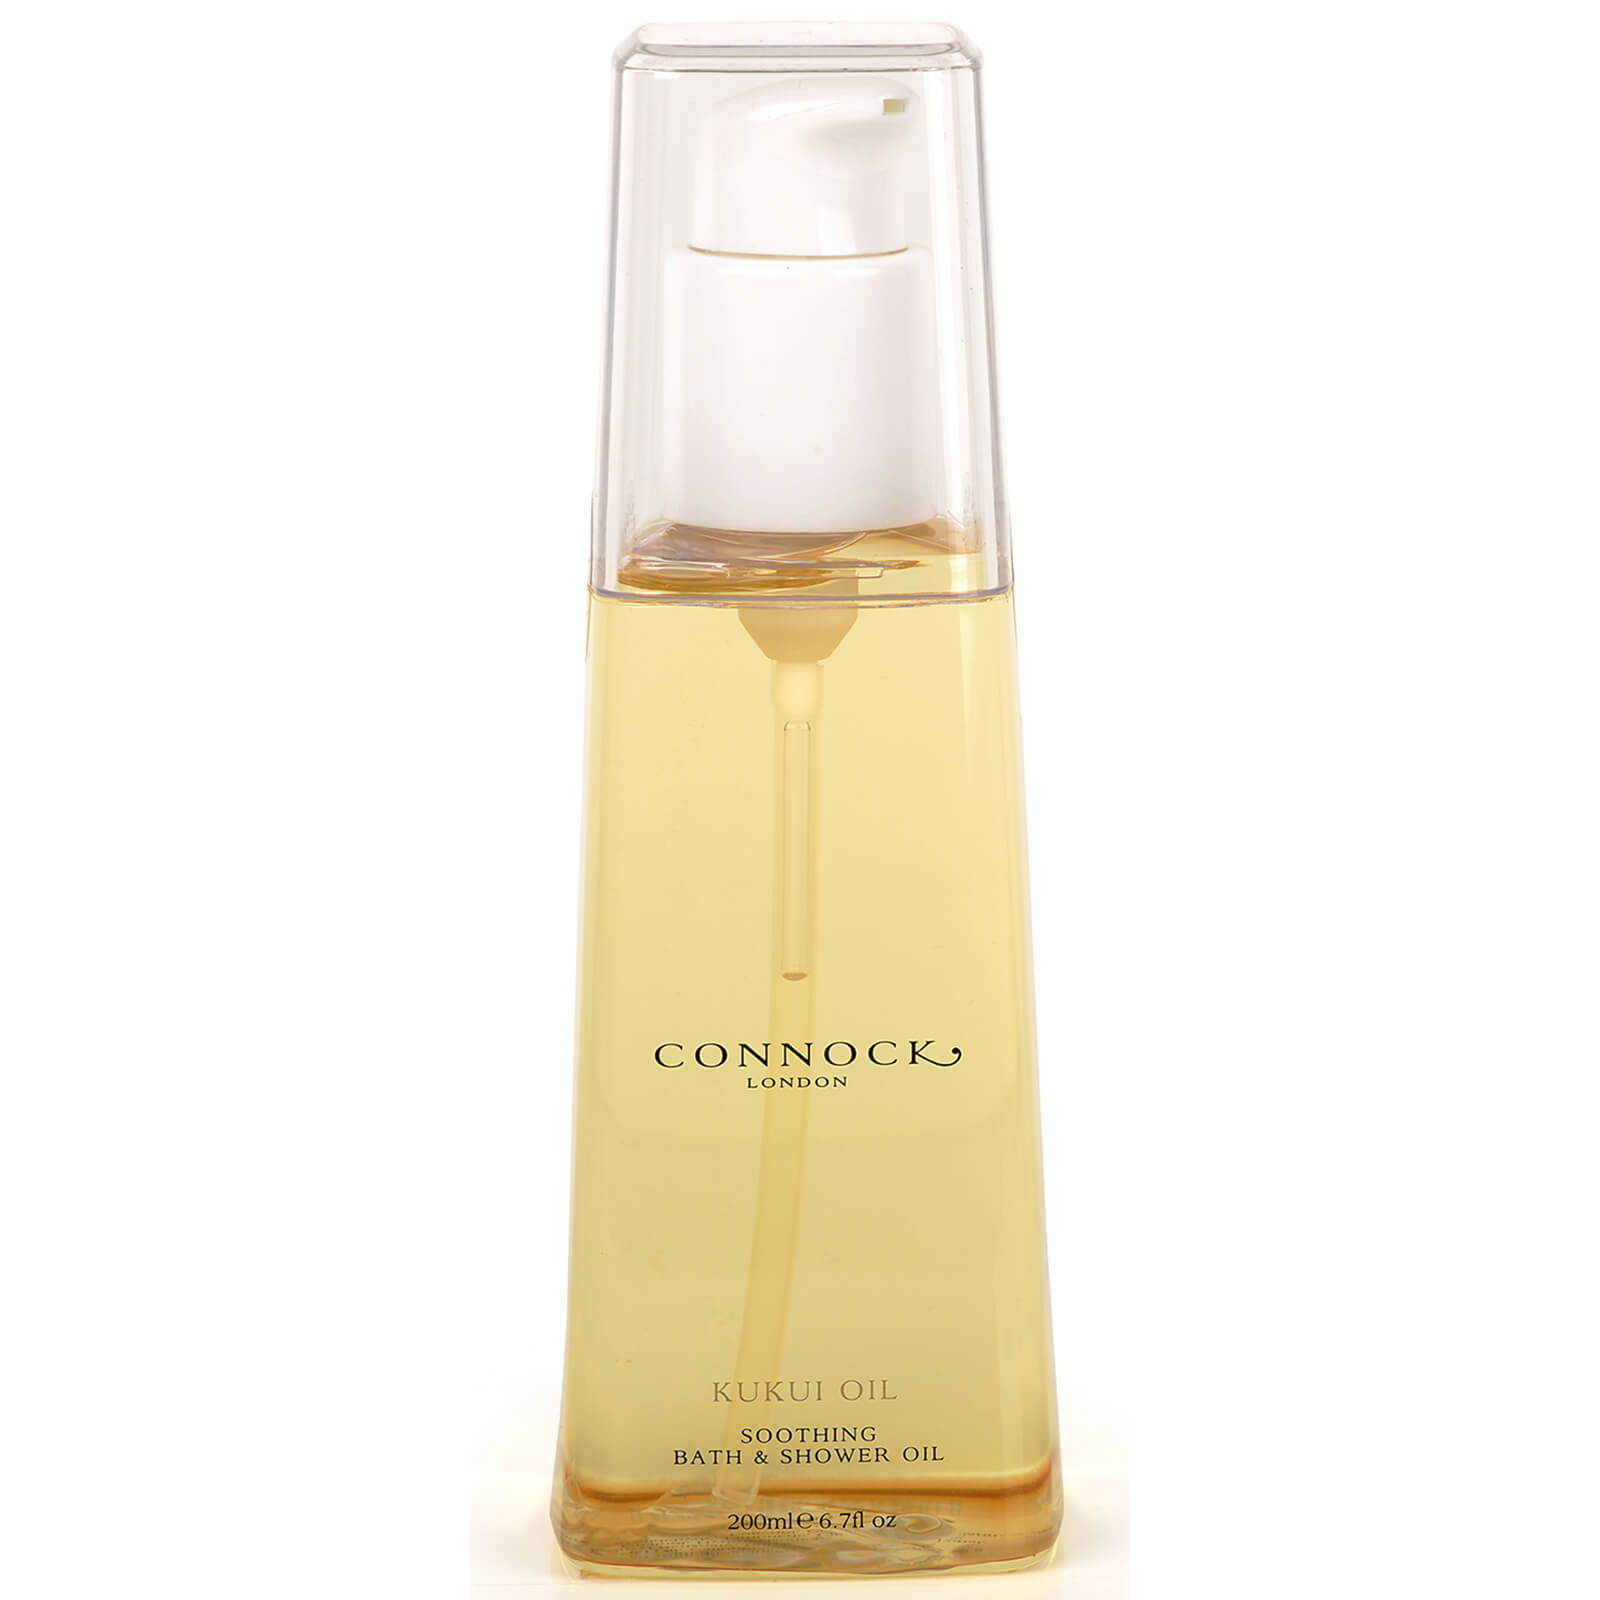 Connock London Kukui Oil Soothing Bath & Shower Oil 200ml